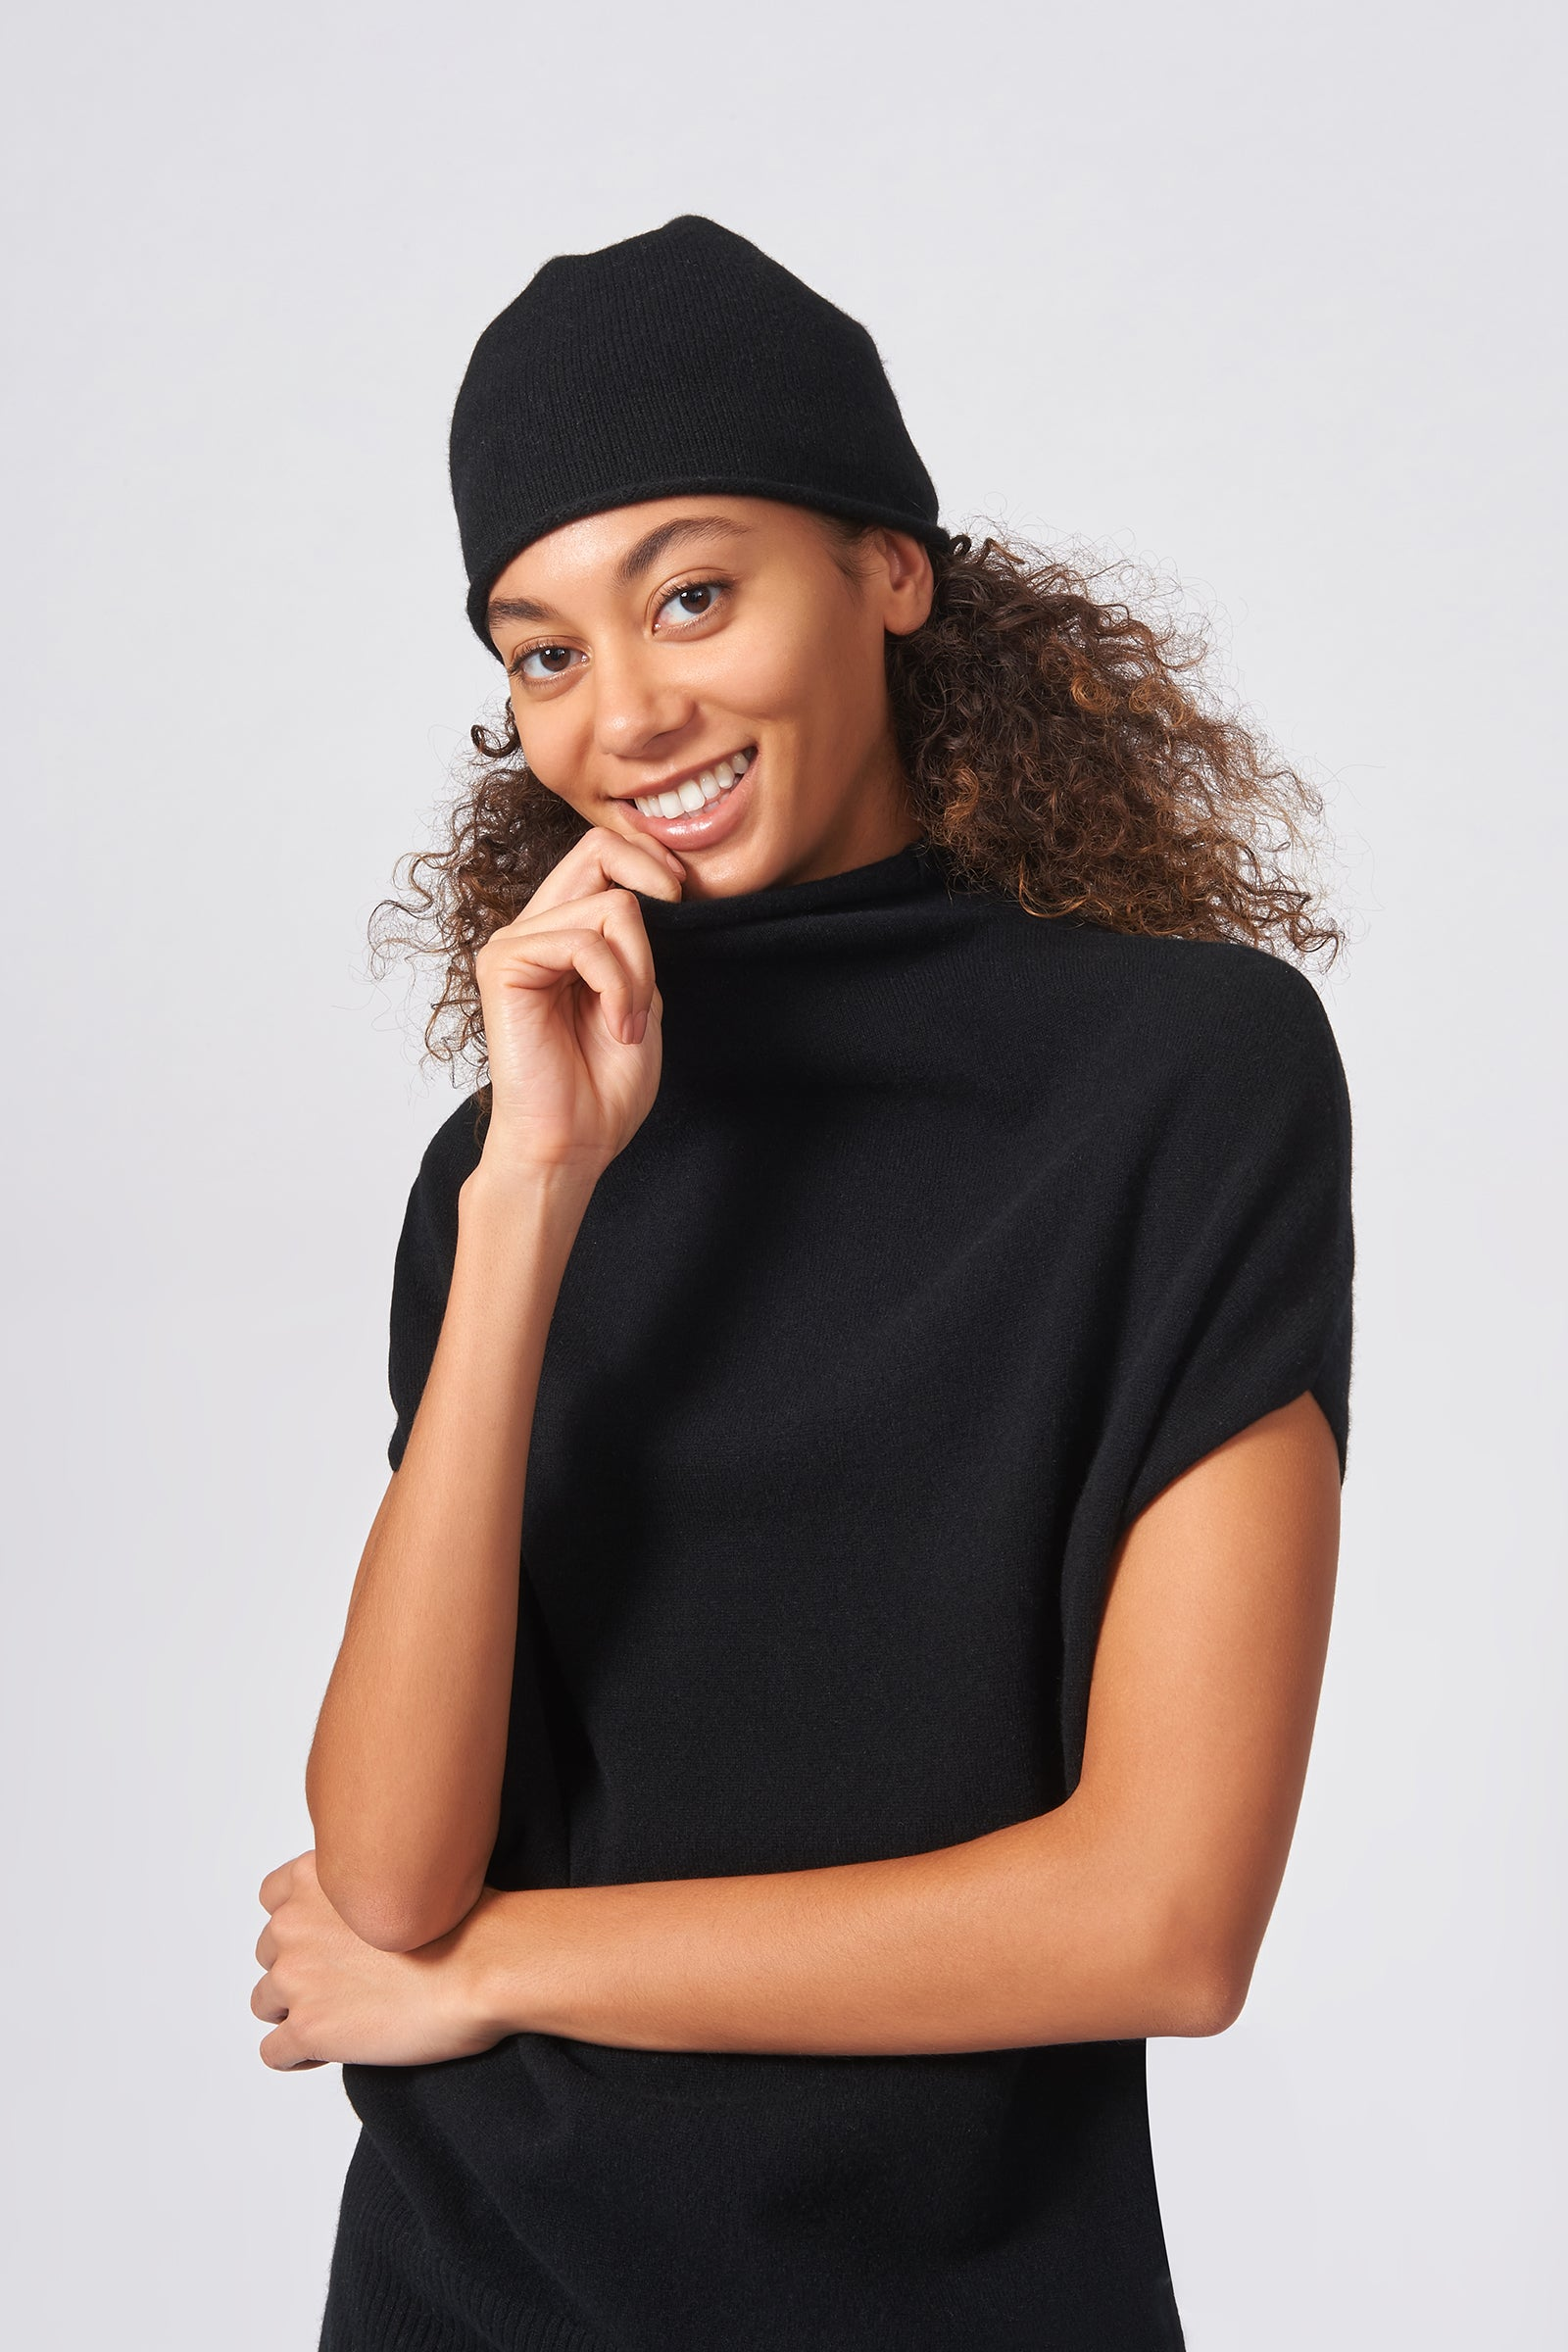 Kal Rieman Cashmere Cap in Black on Model Front View